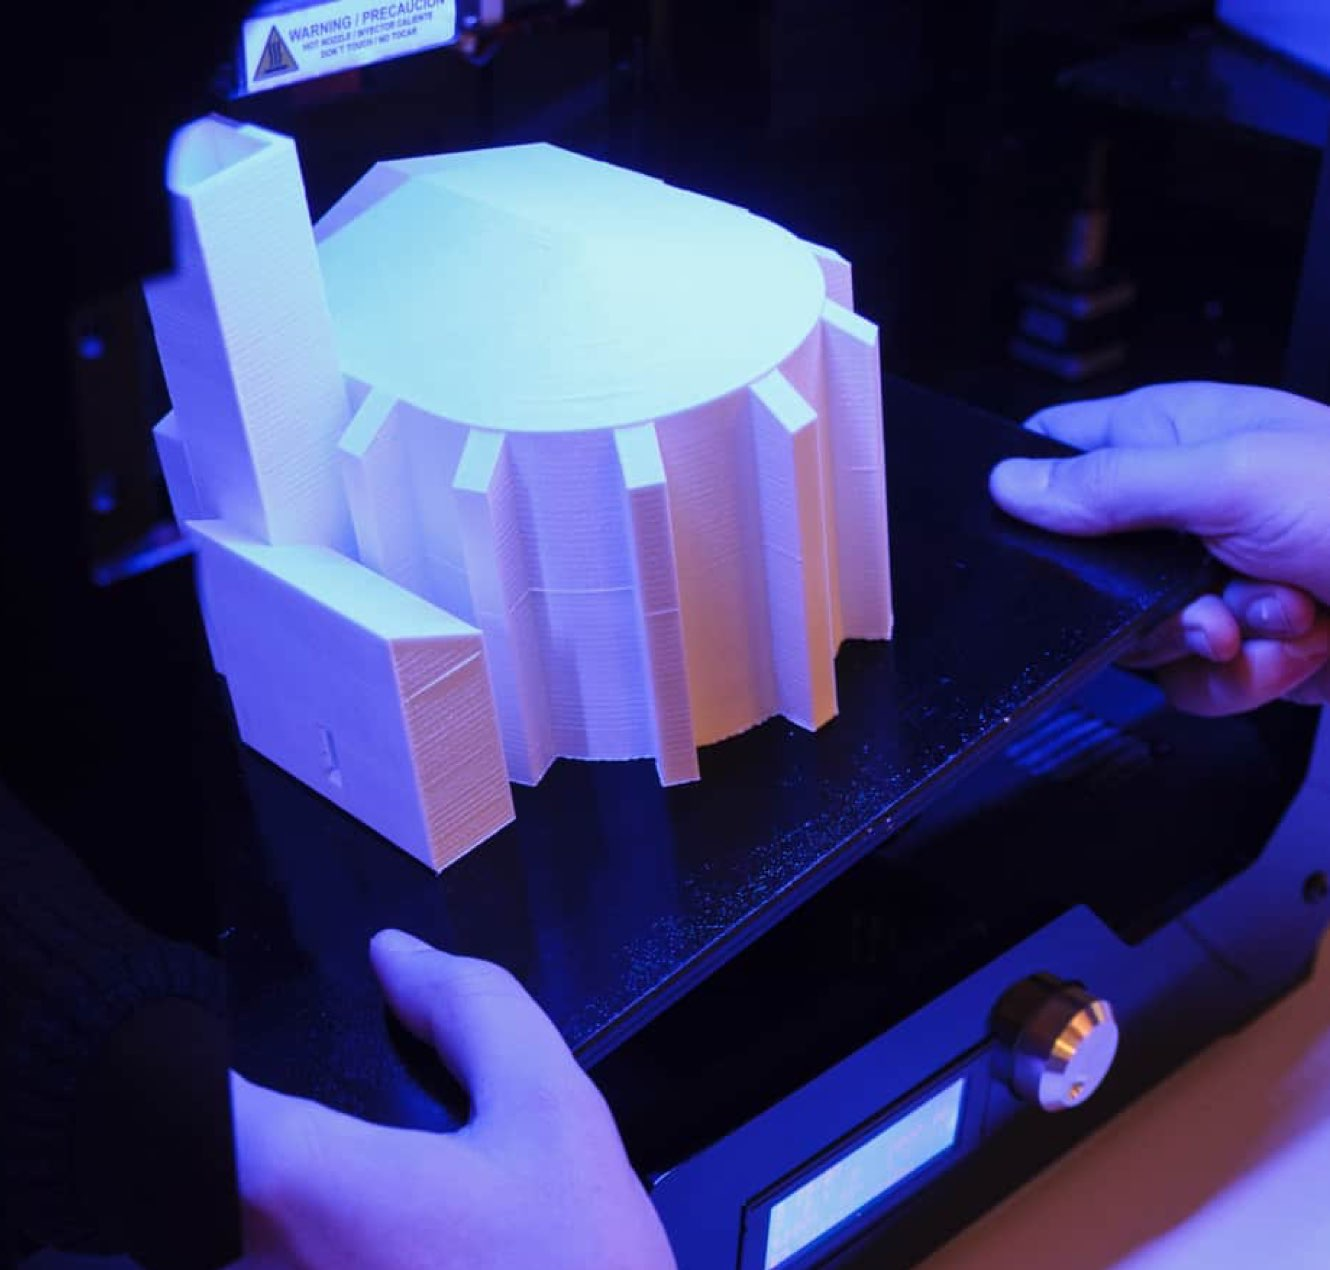 A Framework to Assess the Applicability of 3D Printing in Manufacturing